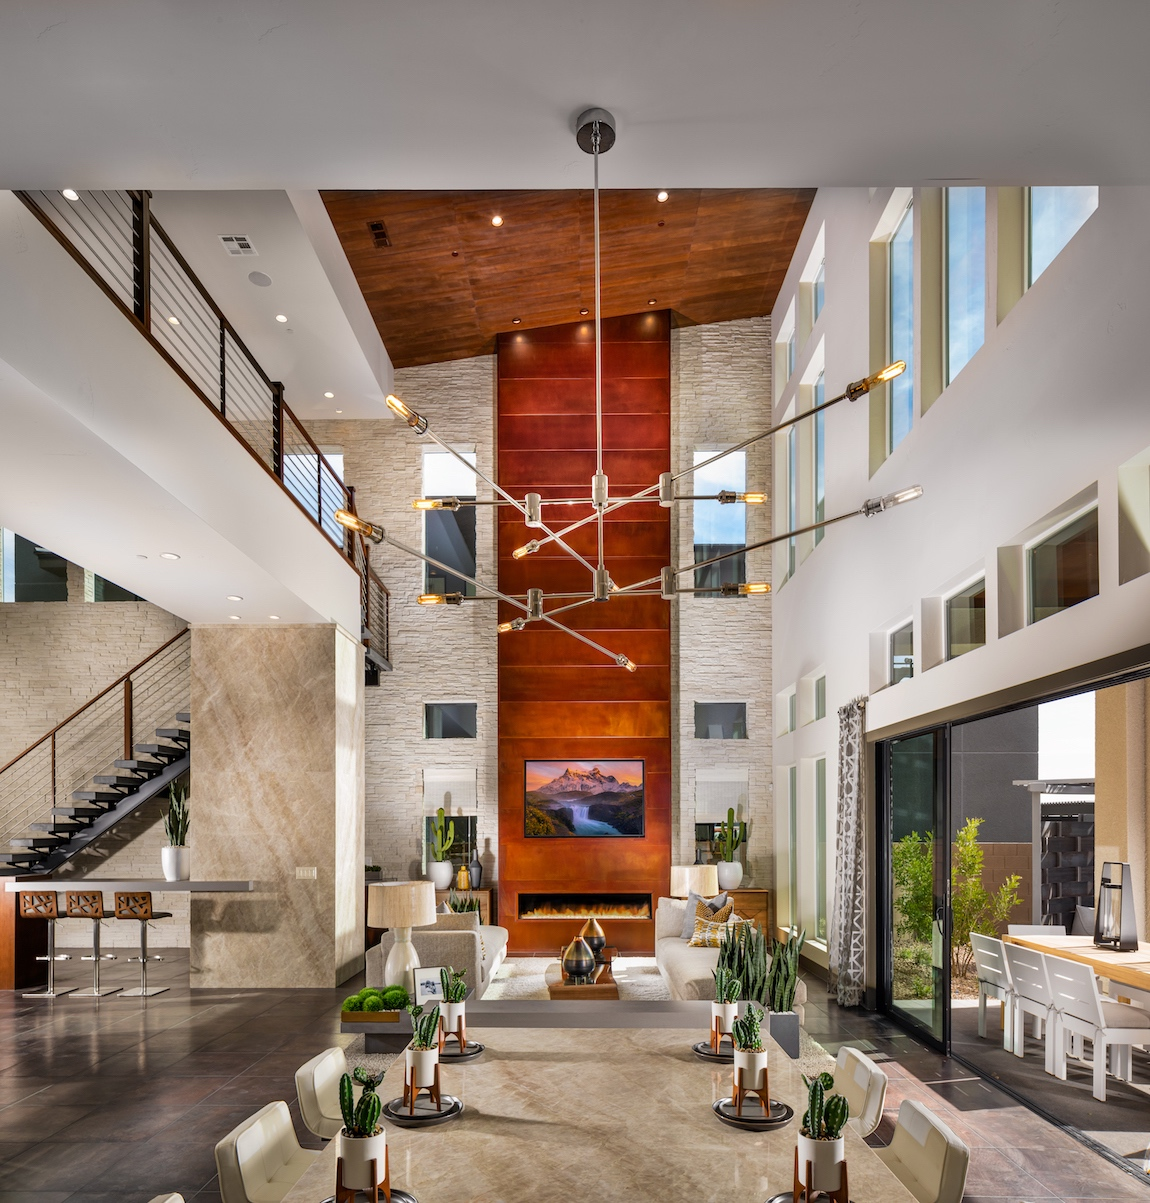 Great room with mid-century modern design